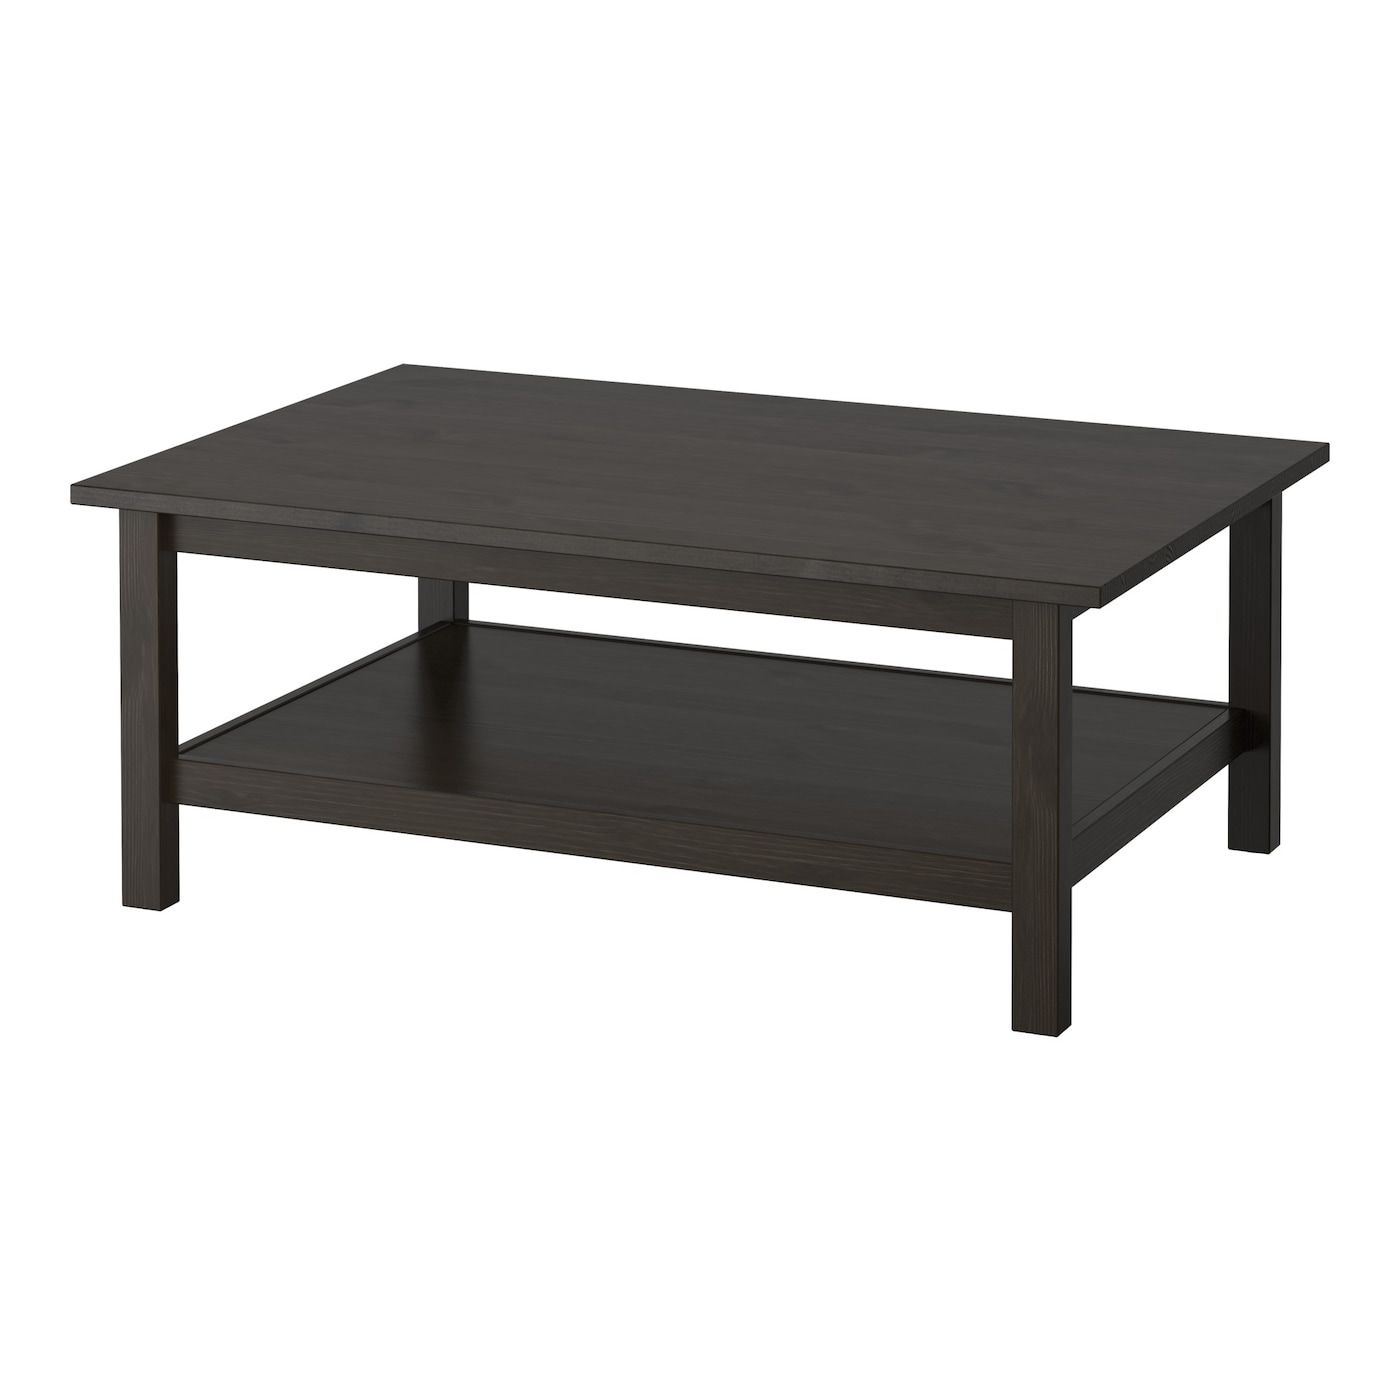 How Tall Are Coffee Tables occasional tables - tray, storage & window tables | ikea